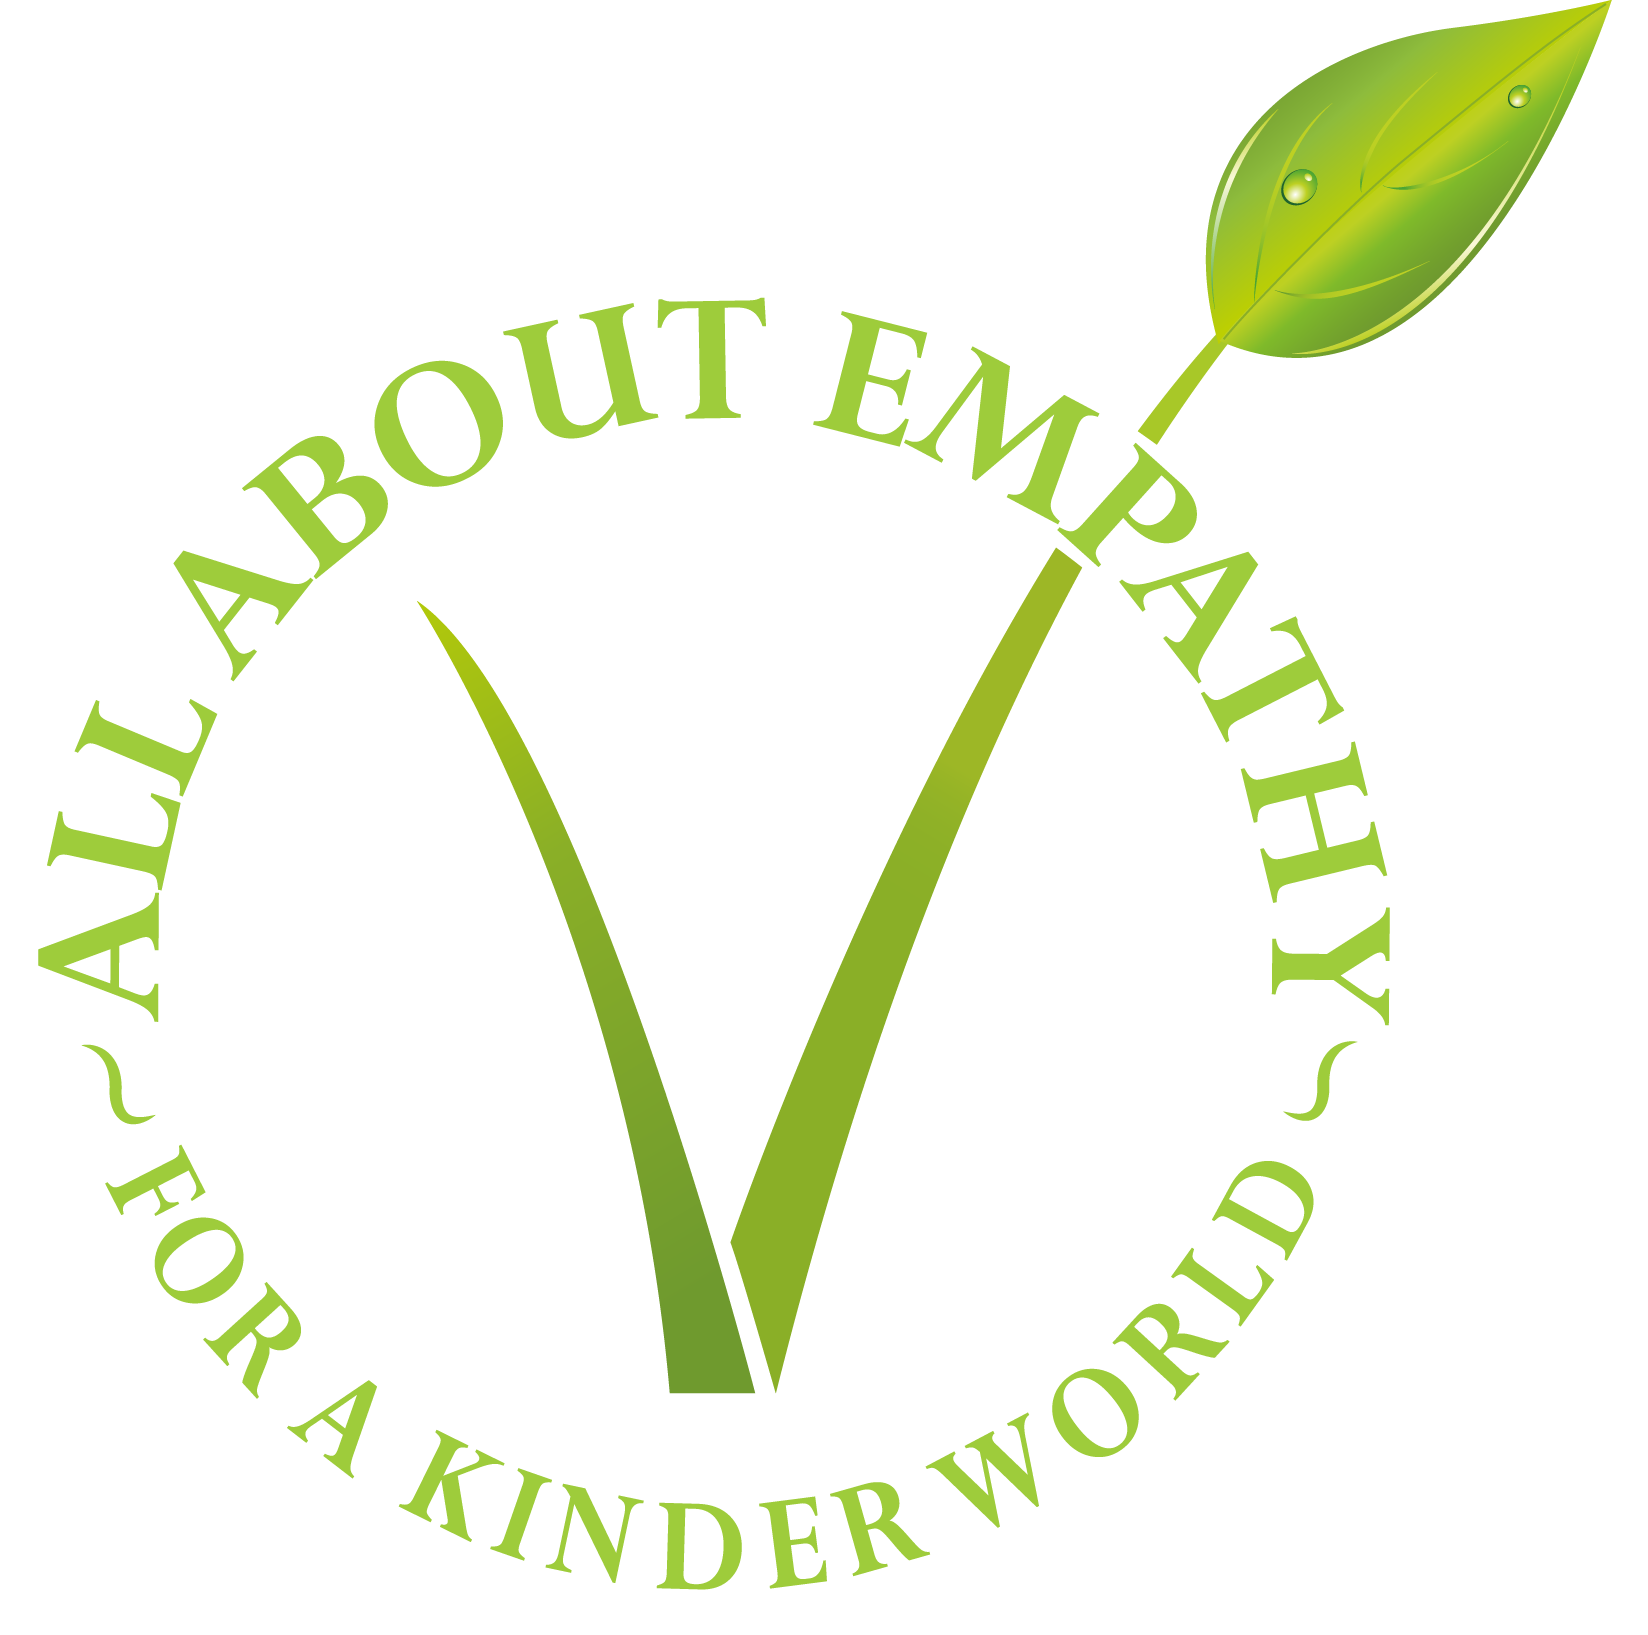 All About Empathy logo